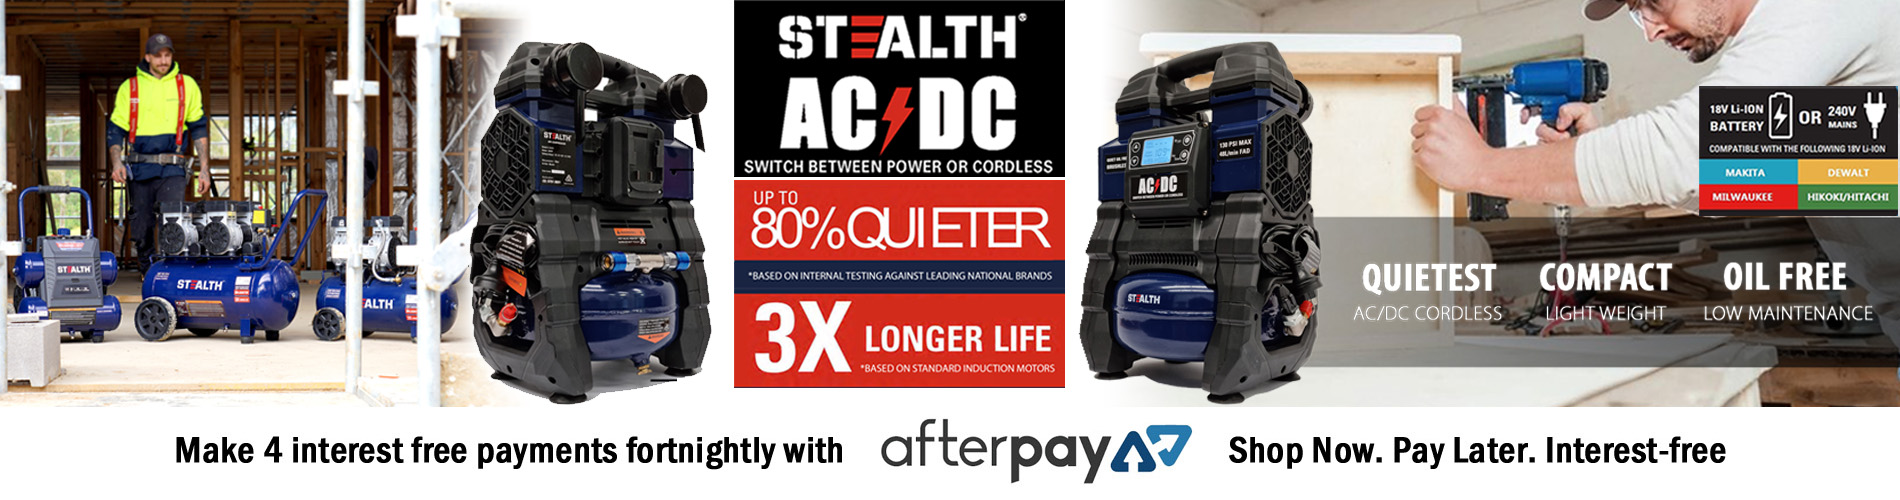 Stealth ACDC Cordless Quiet Air Compressor